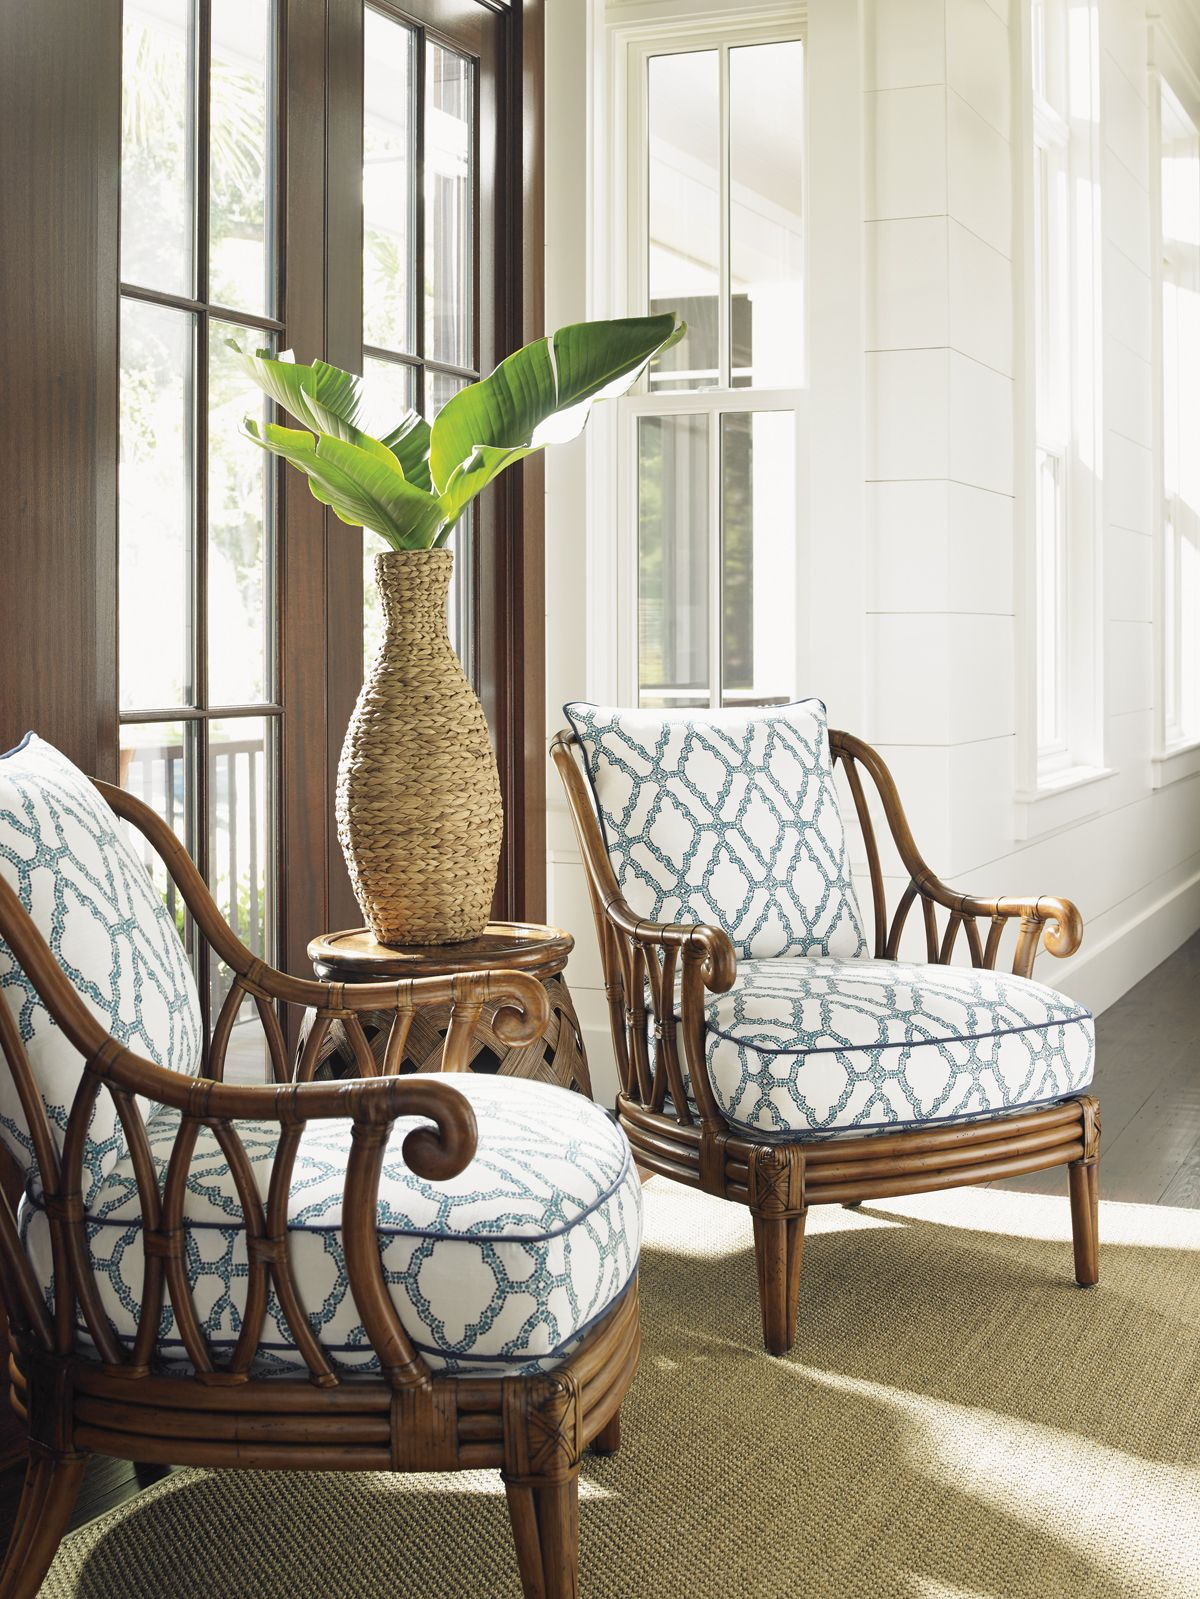 Prime Bali Hai Ocean Breeze Accent Chairs Tommybahamahome Pabps2019 Chair Design Images Pabps2019Com